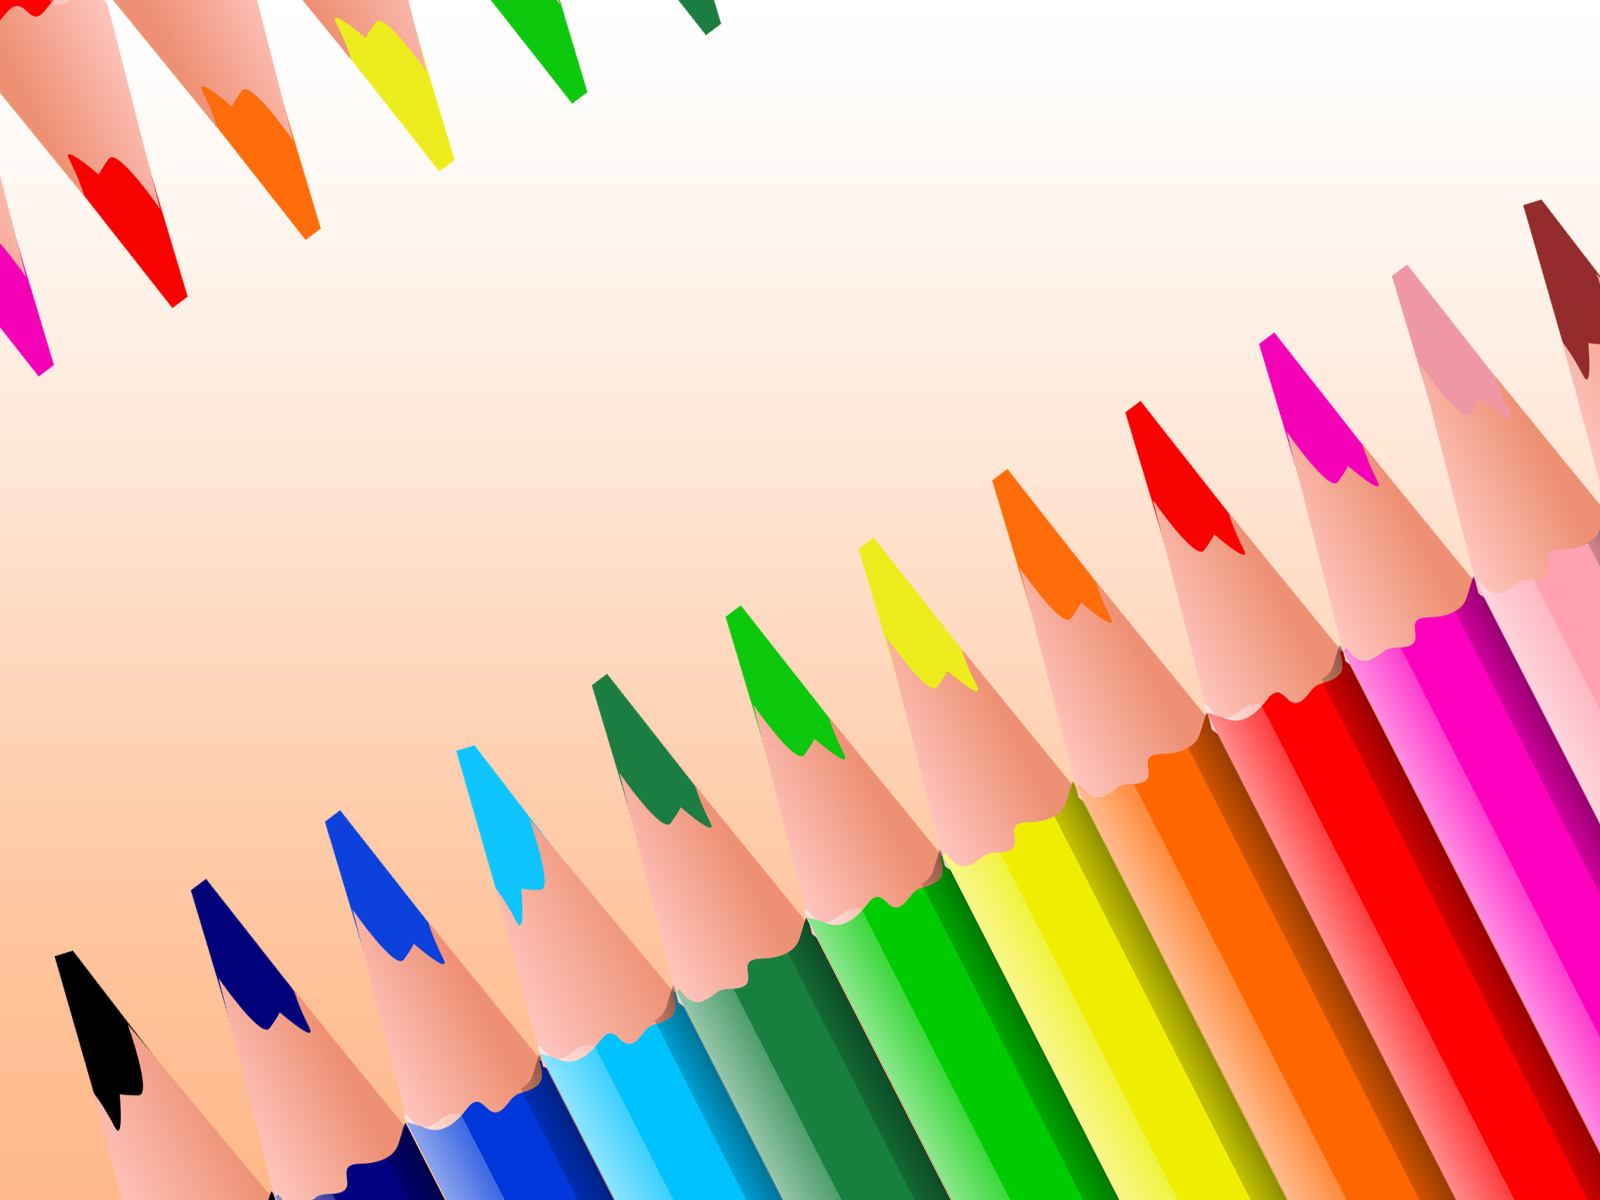 Coloured Pencils Backgrounds for Education